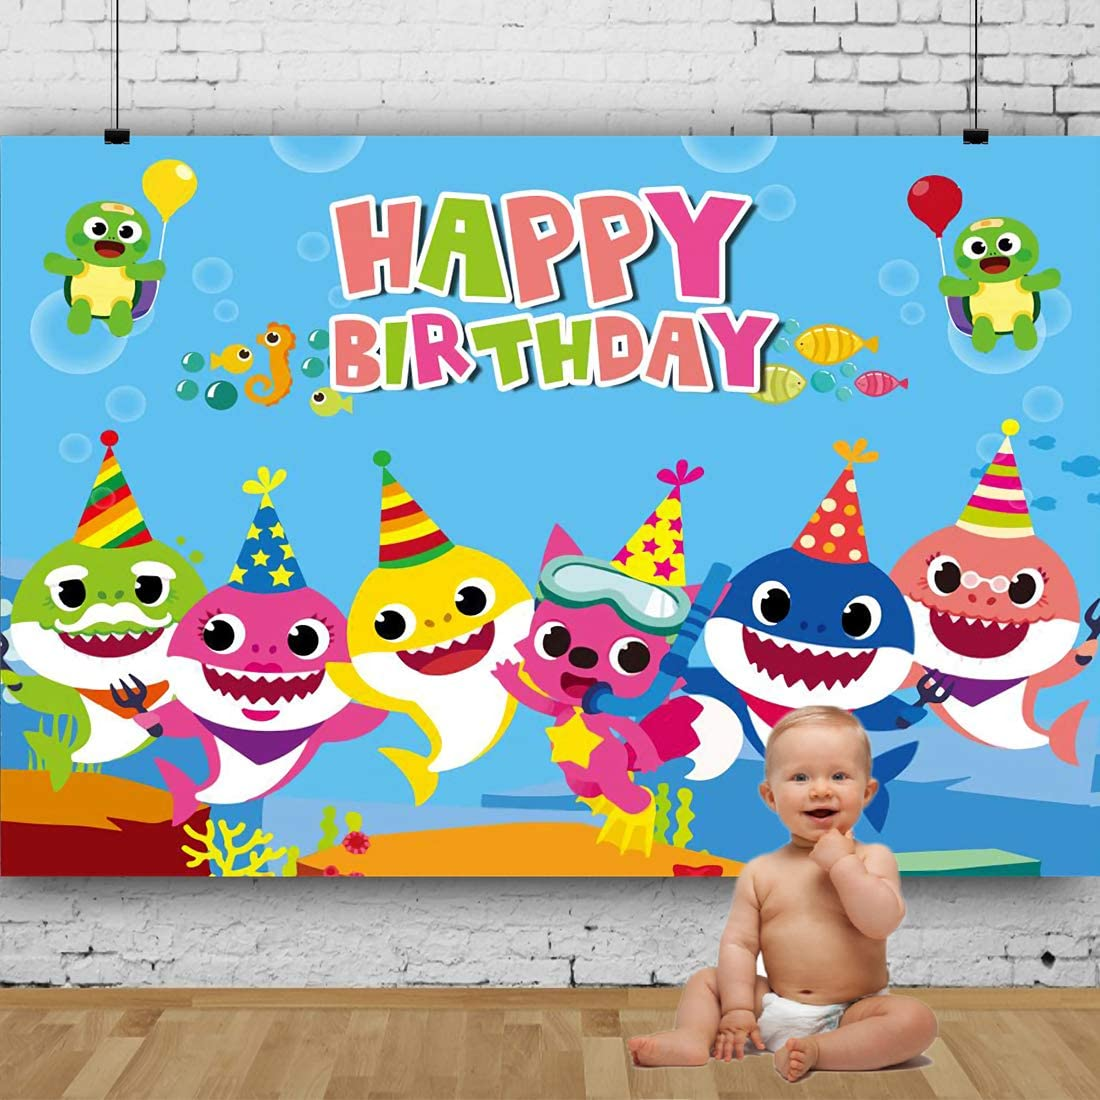 Baby Shark Backdrop for Photography Undersea World Whale Shark Starfish Seahorse Photo Background Children Birthday Party (5X3ft, Blue)